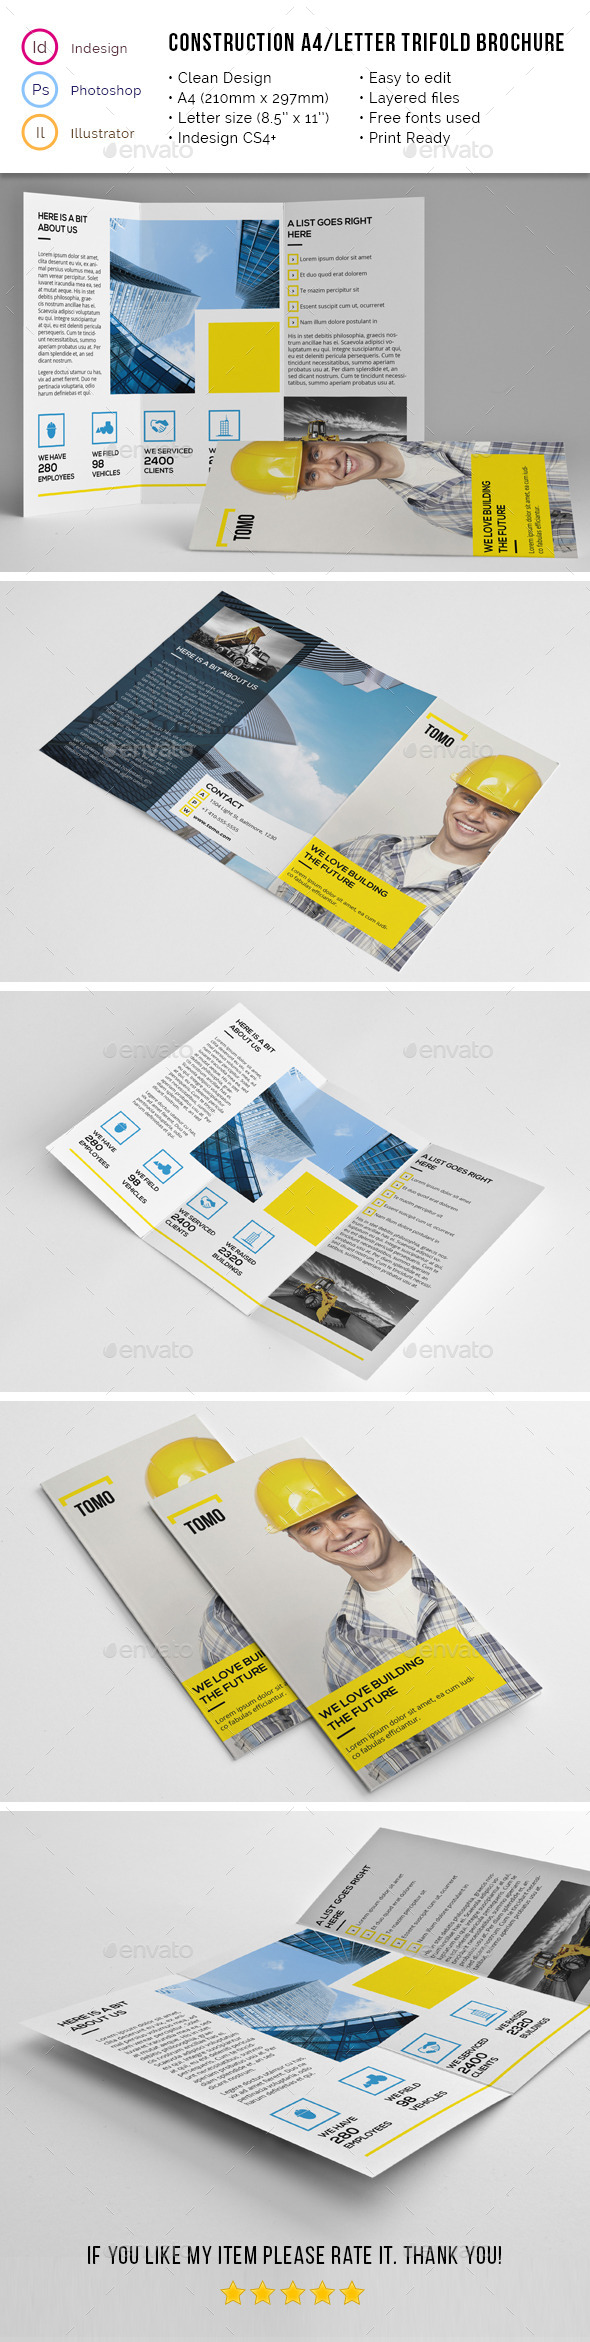 Construction Company A4 / Letter Trifold 02 - Corporate Brochures